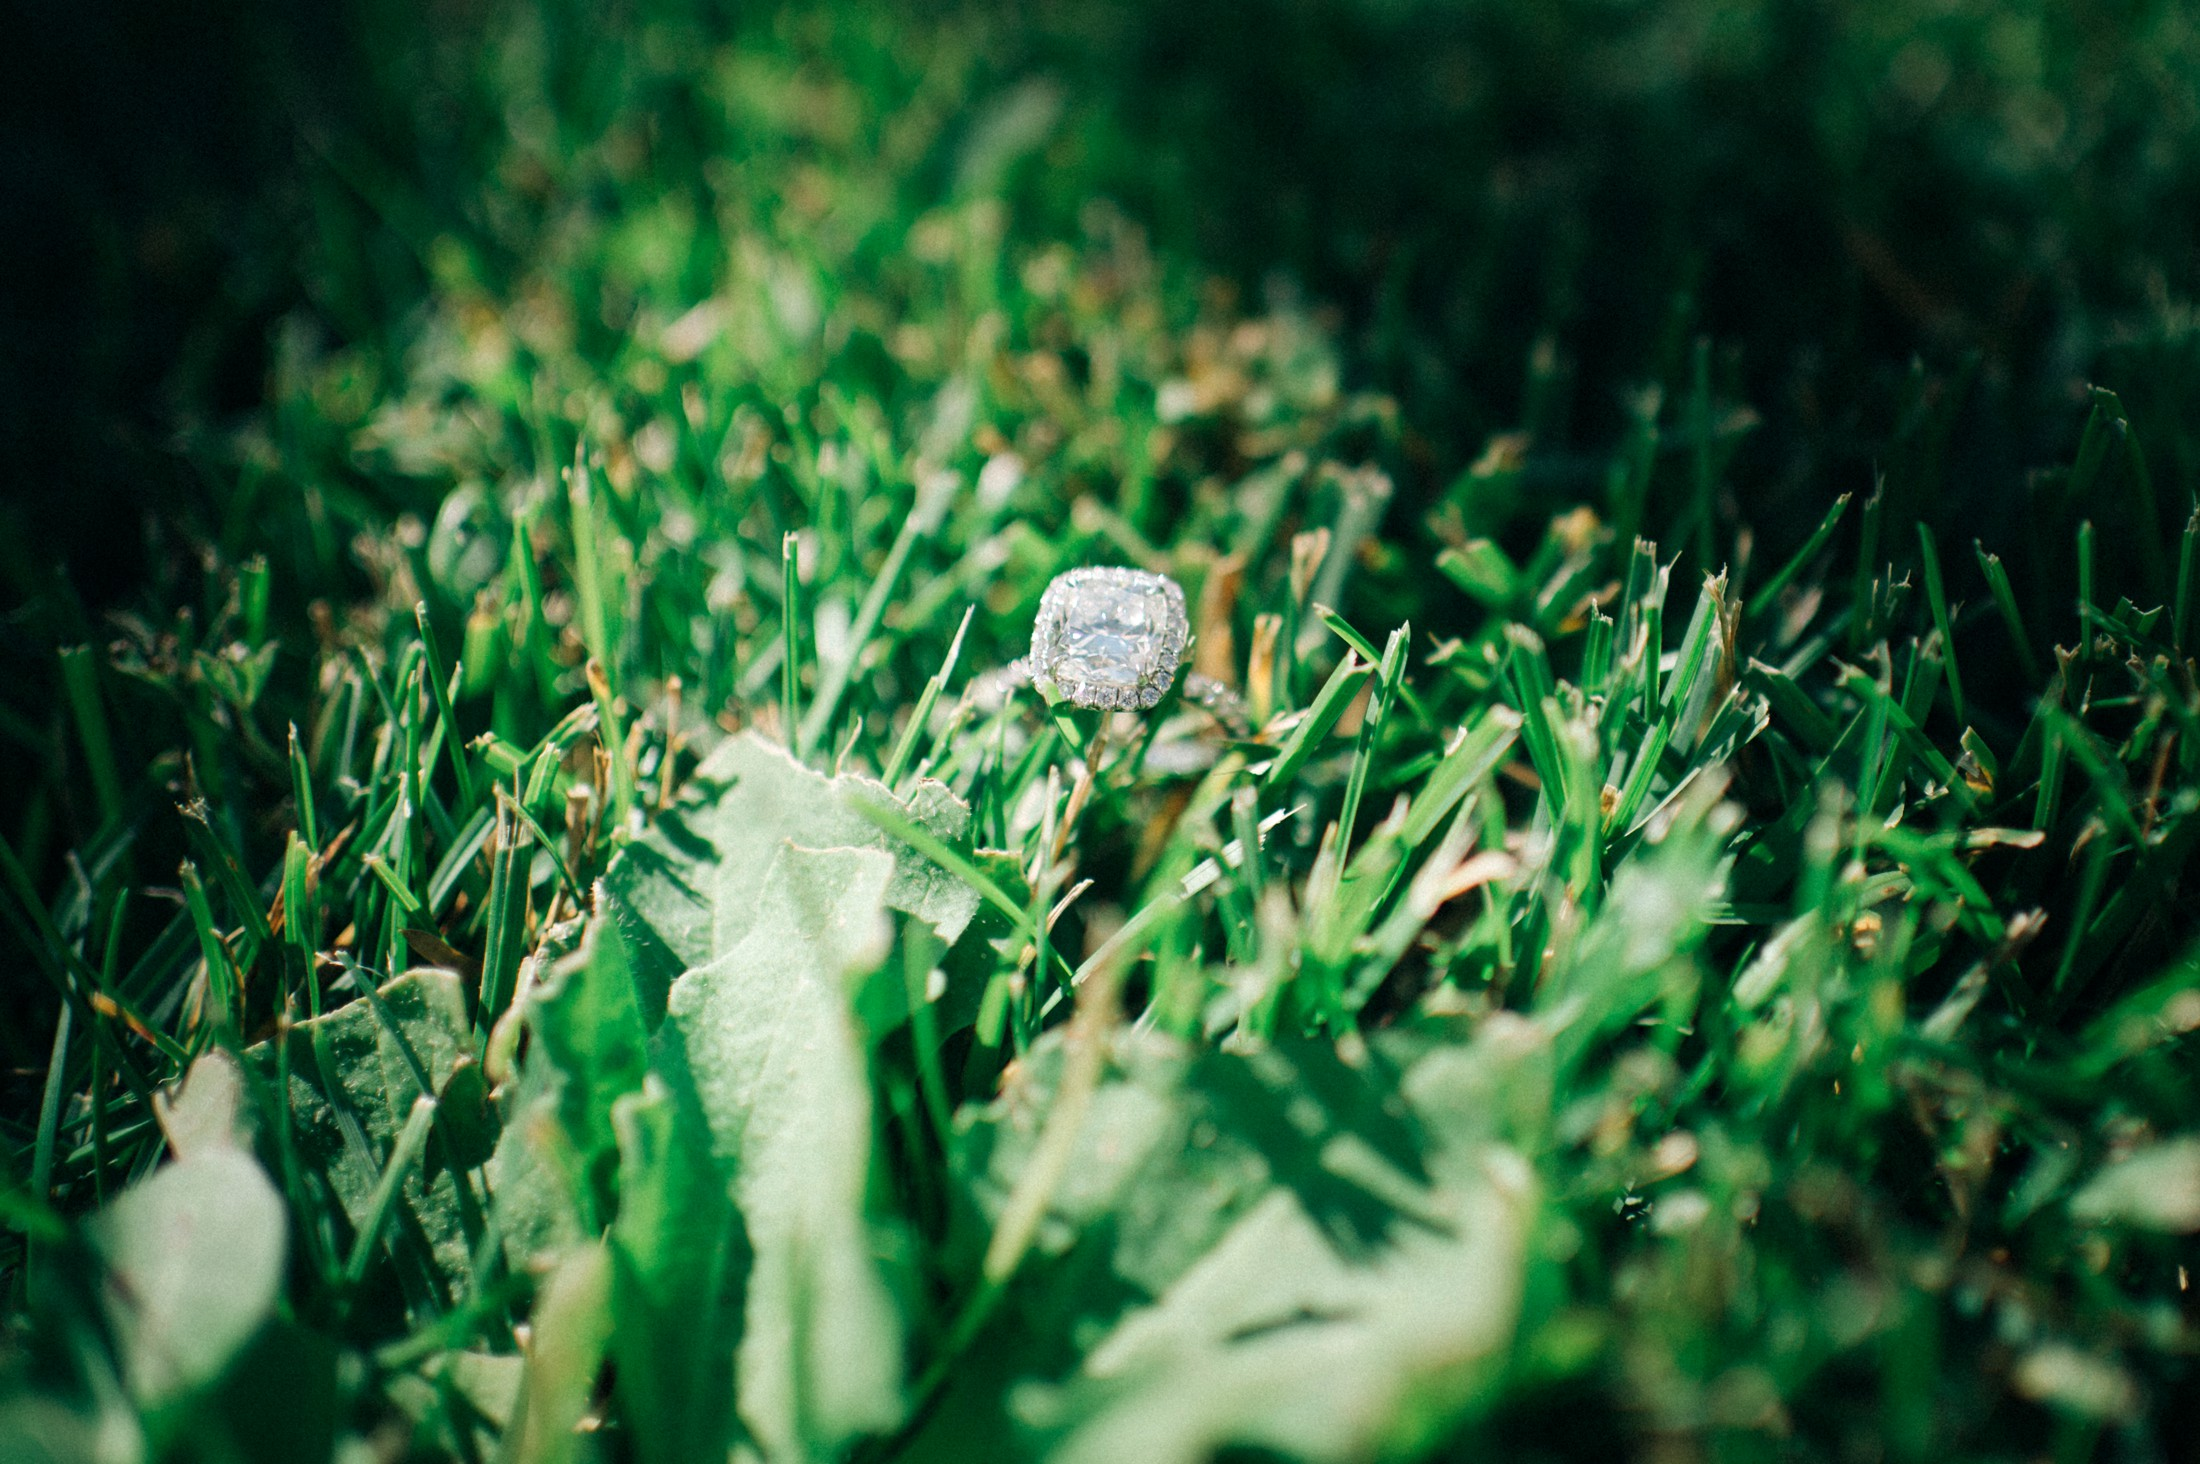 wedding ring on the grass